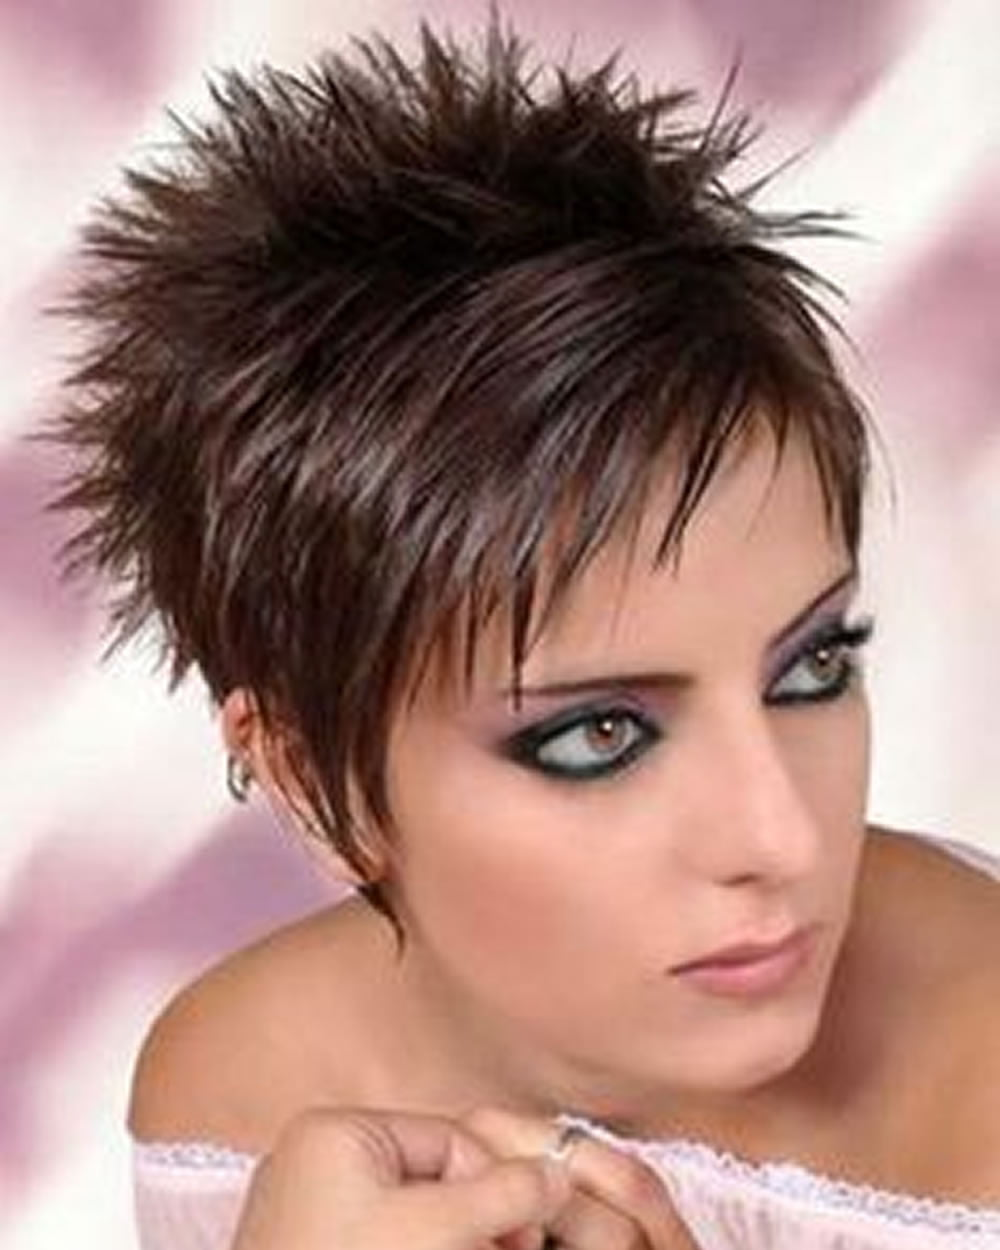 spiked hair styles spiky haircuts amp hairstyles for 2018 page 4 5568